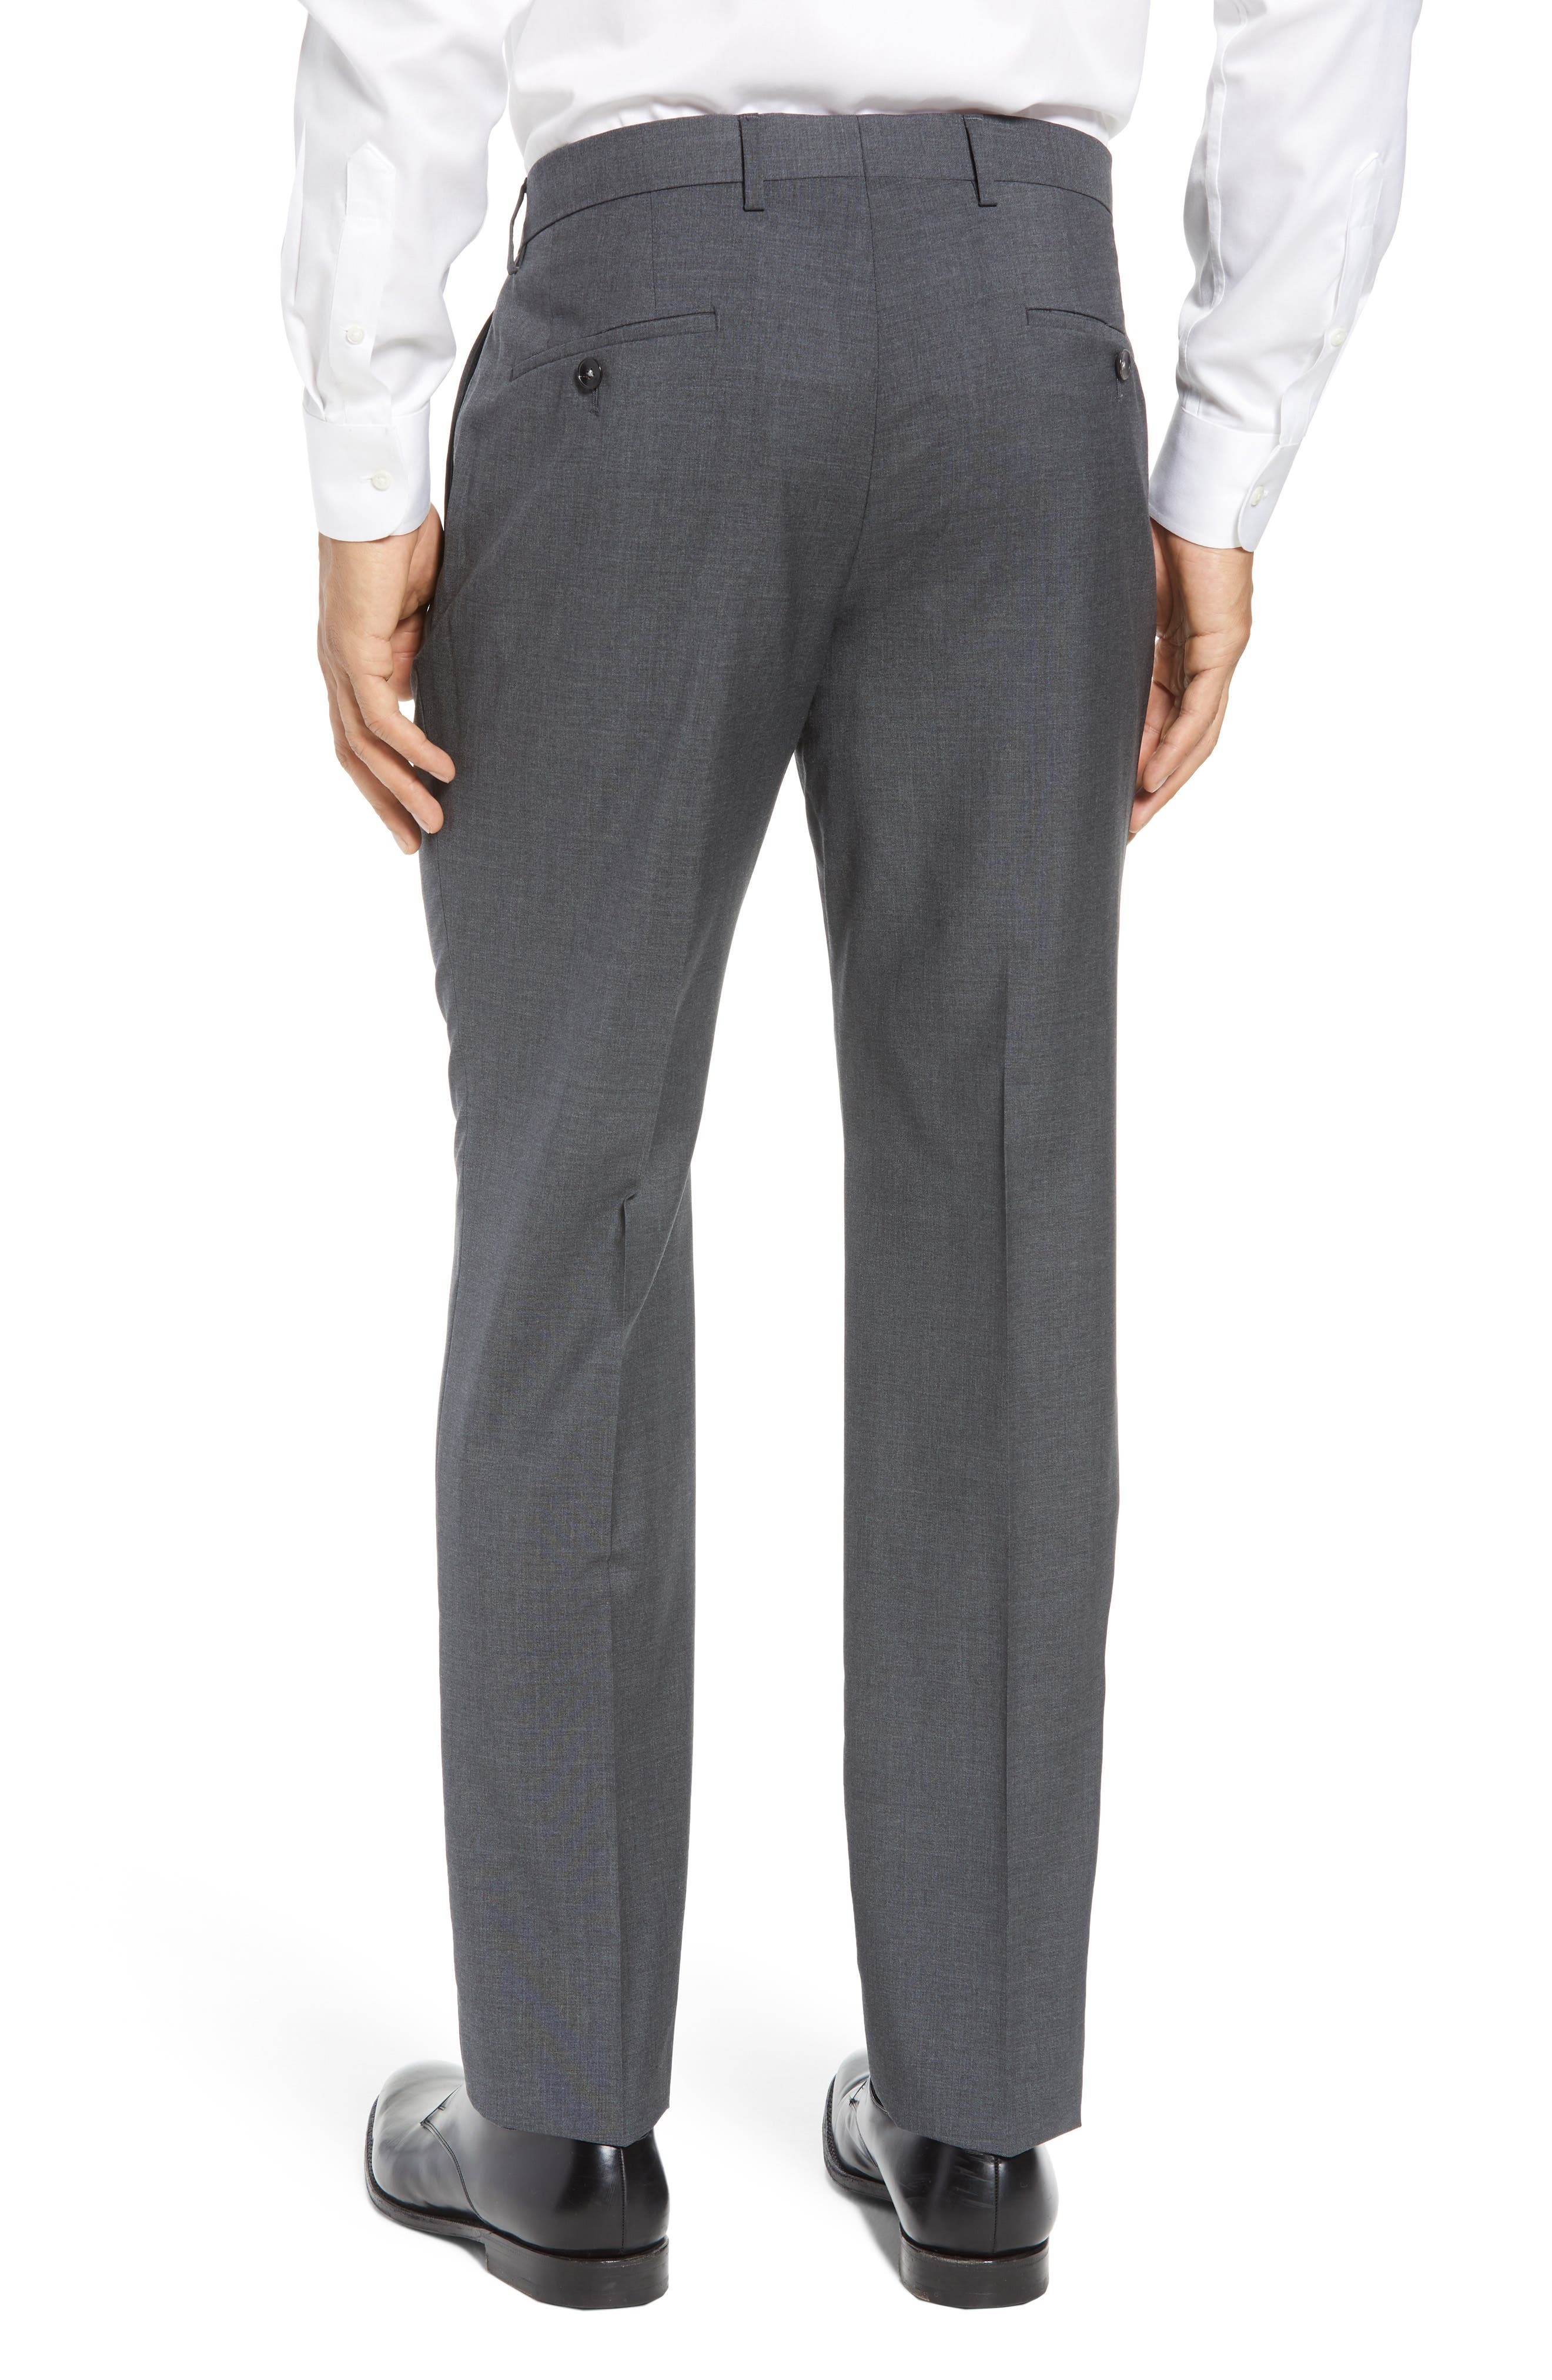 BOSS, Genesis Flat Front Solid Wool Trousers, Alternate thumbnail 2, color, CHARCOAL